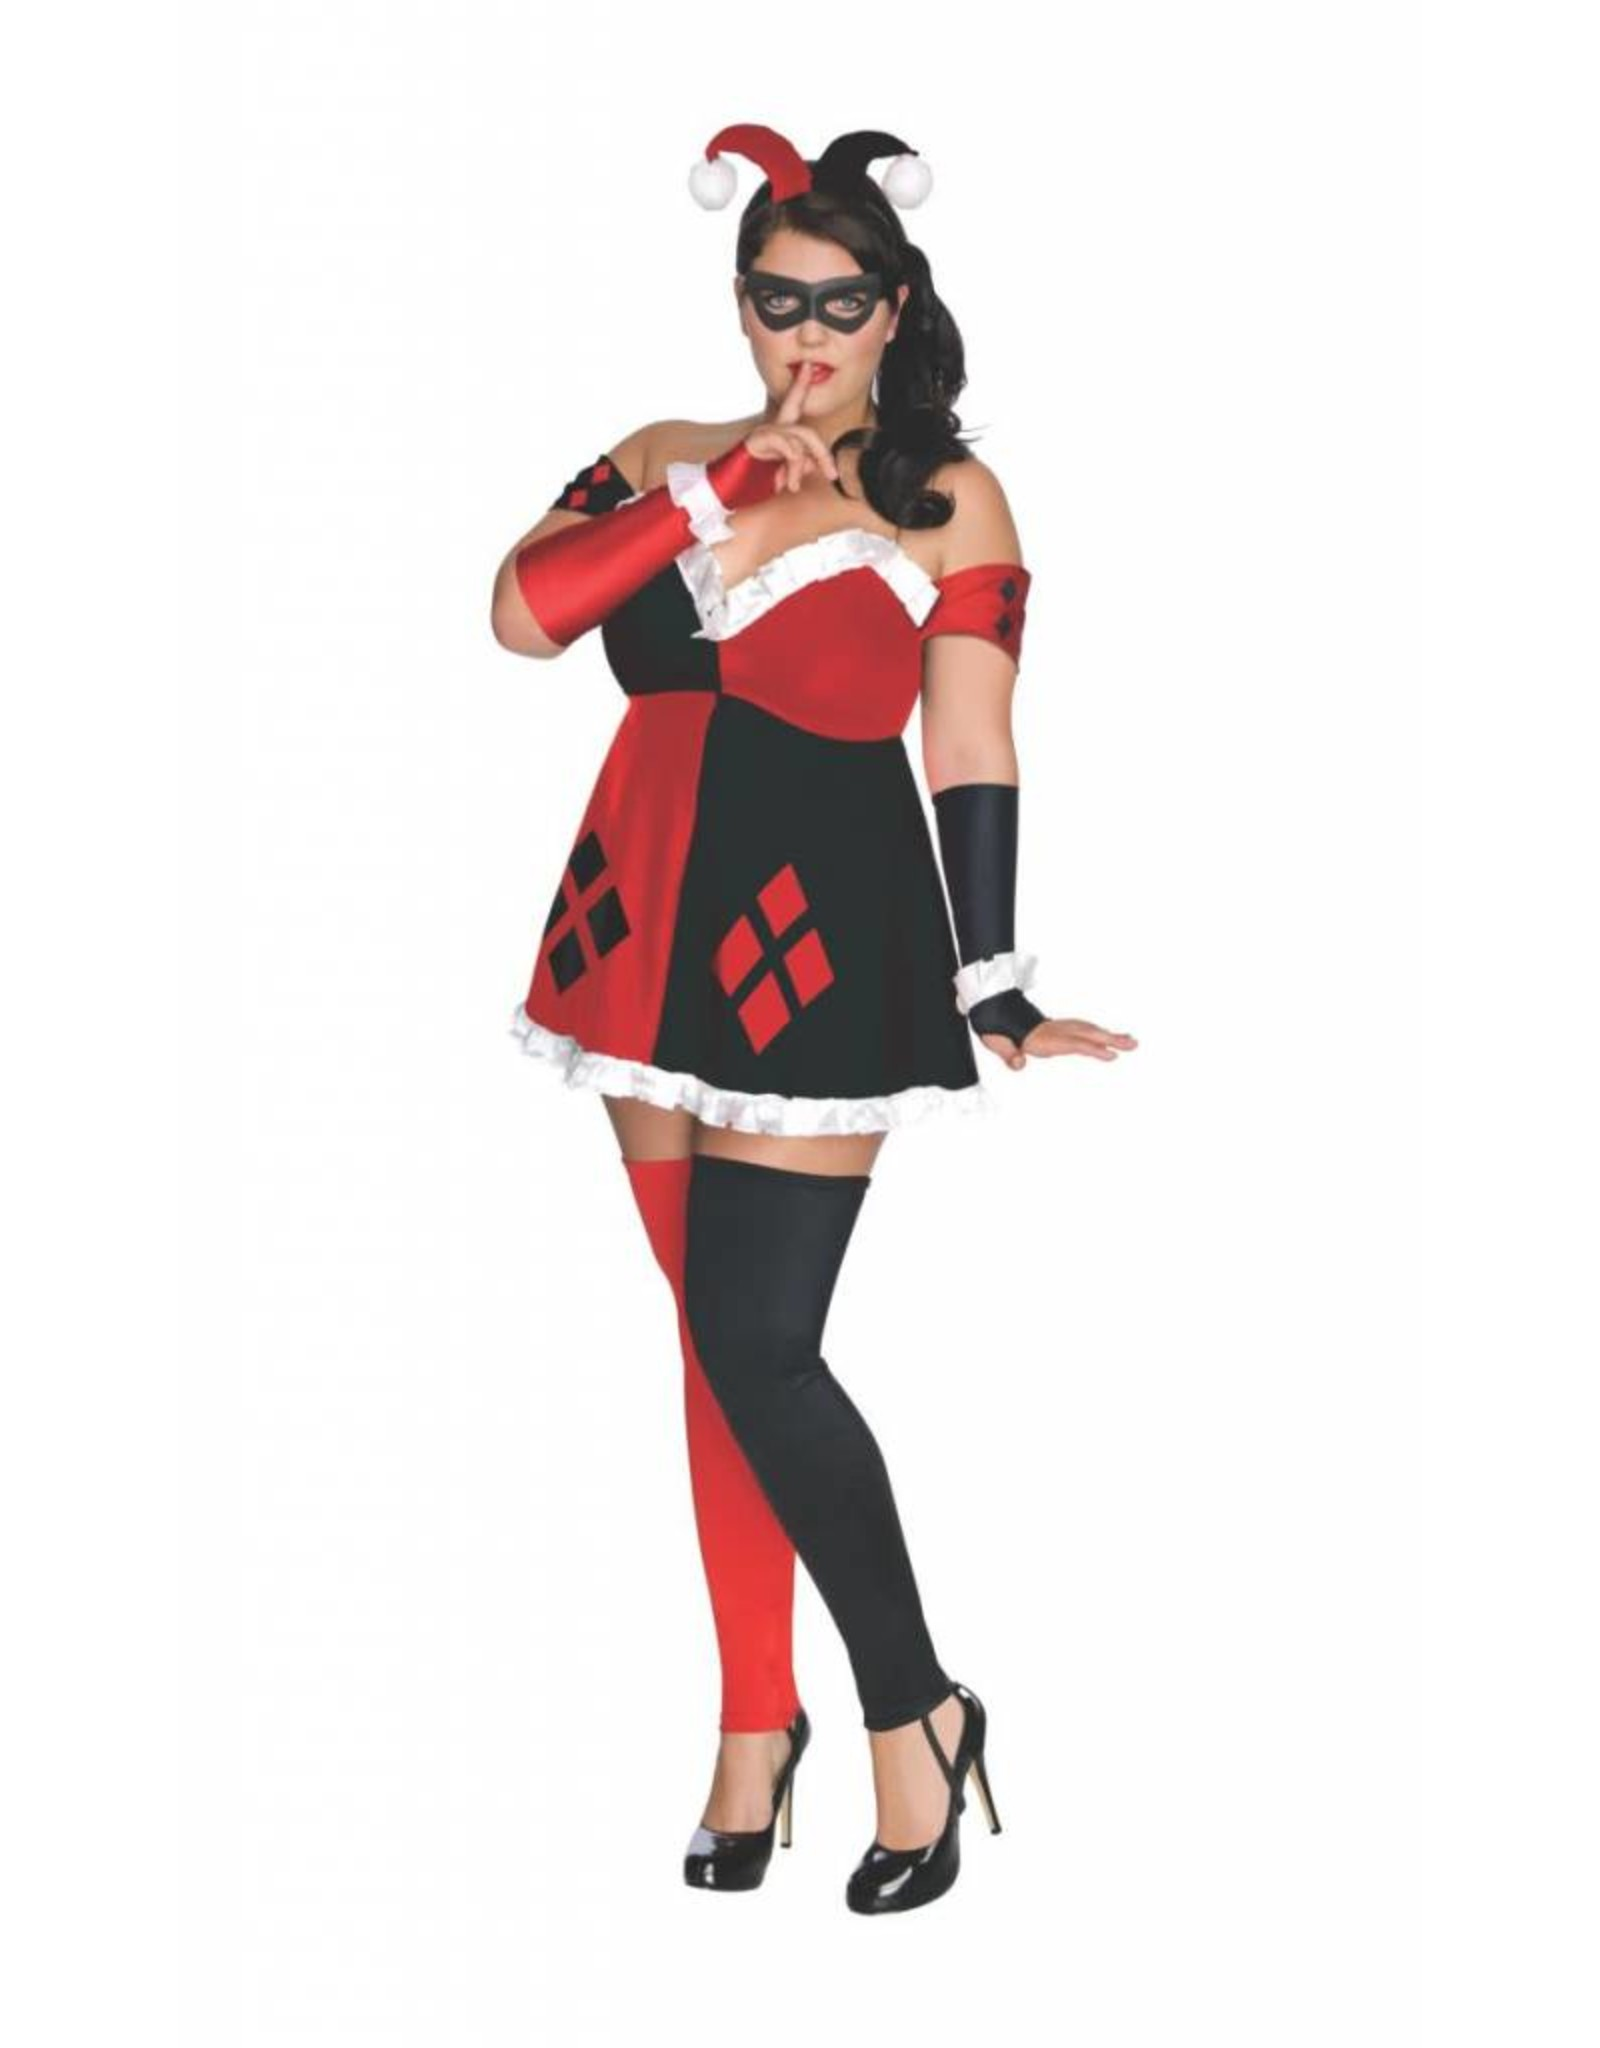 Rubies Costume Harley Quinn - Gotham City Most Wanted